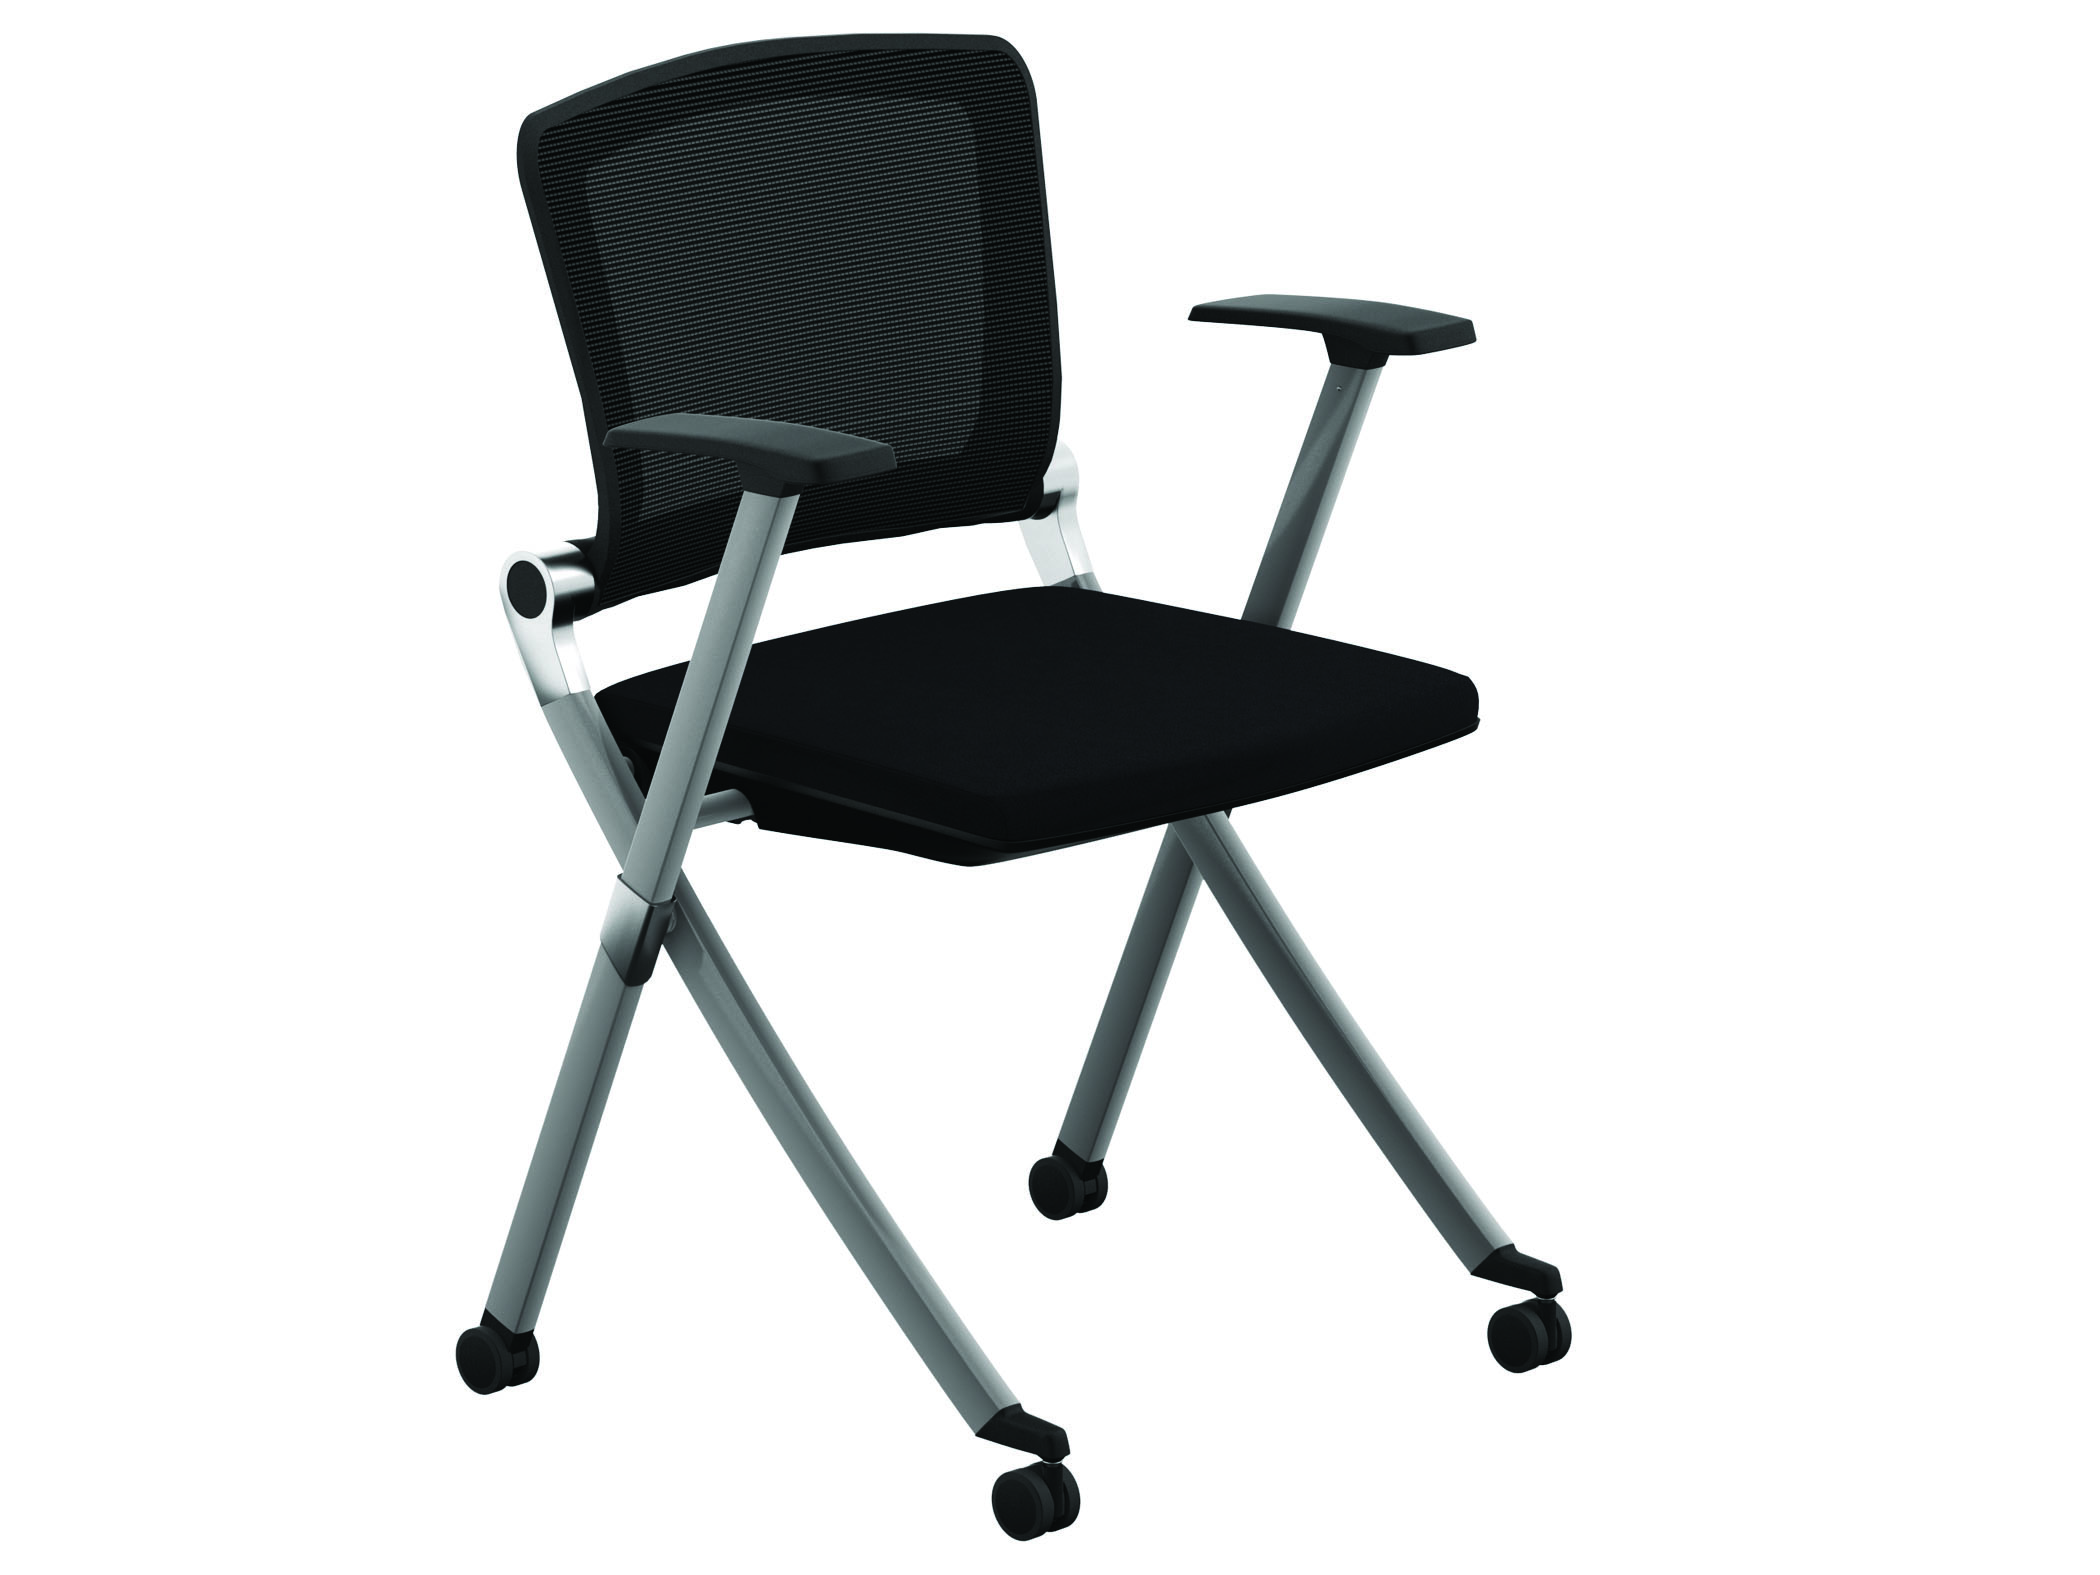 Training Room Furniture from Compel - Ziggy chair